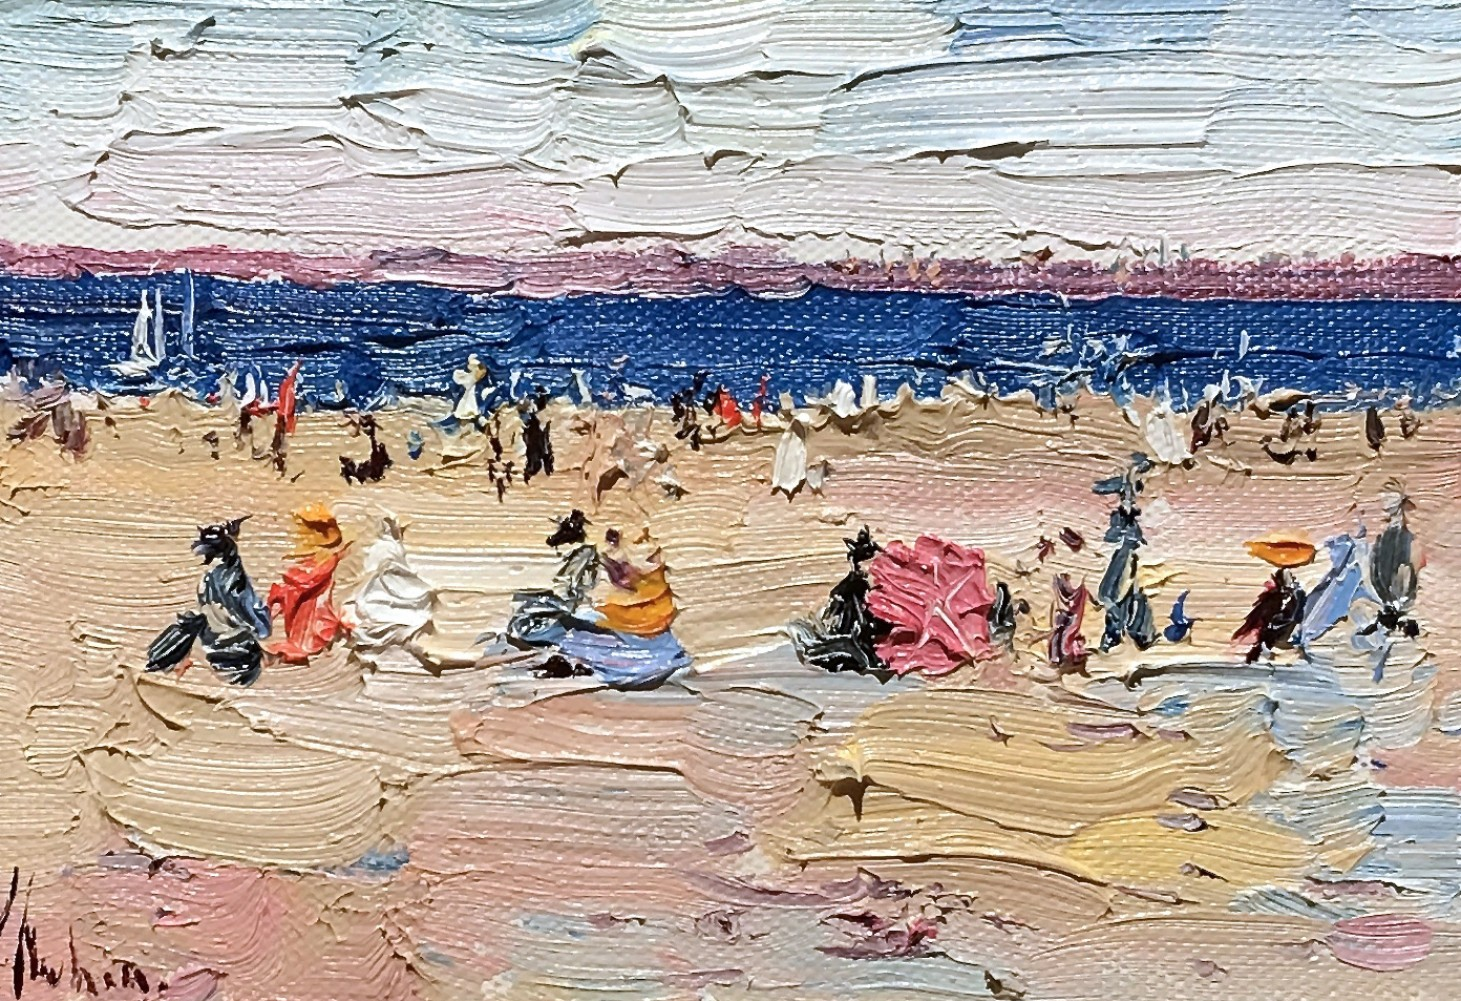 Windy Day on the Beach 20116 10x12